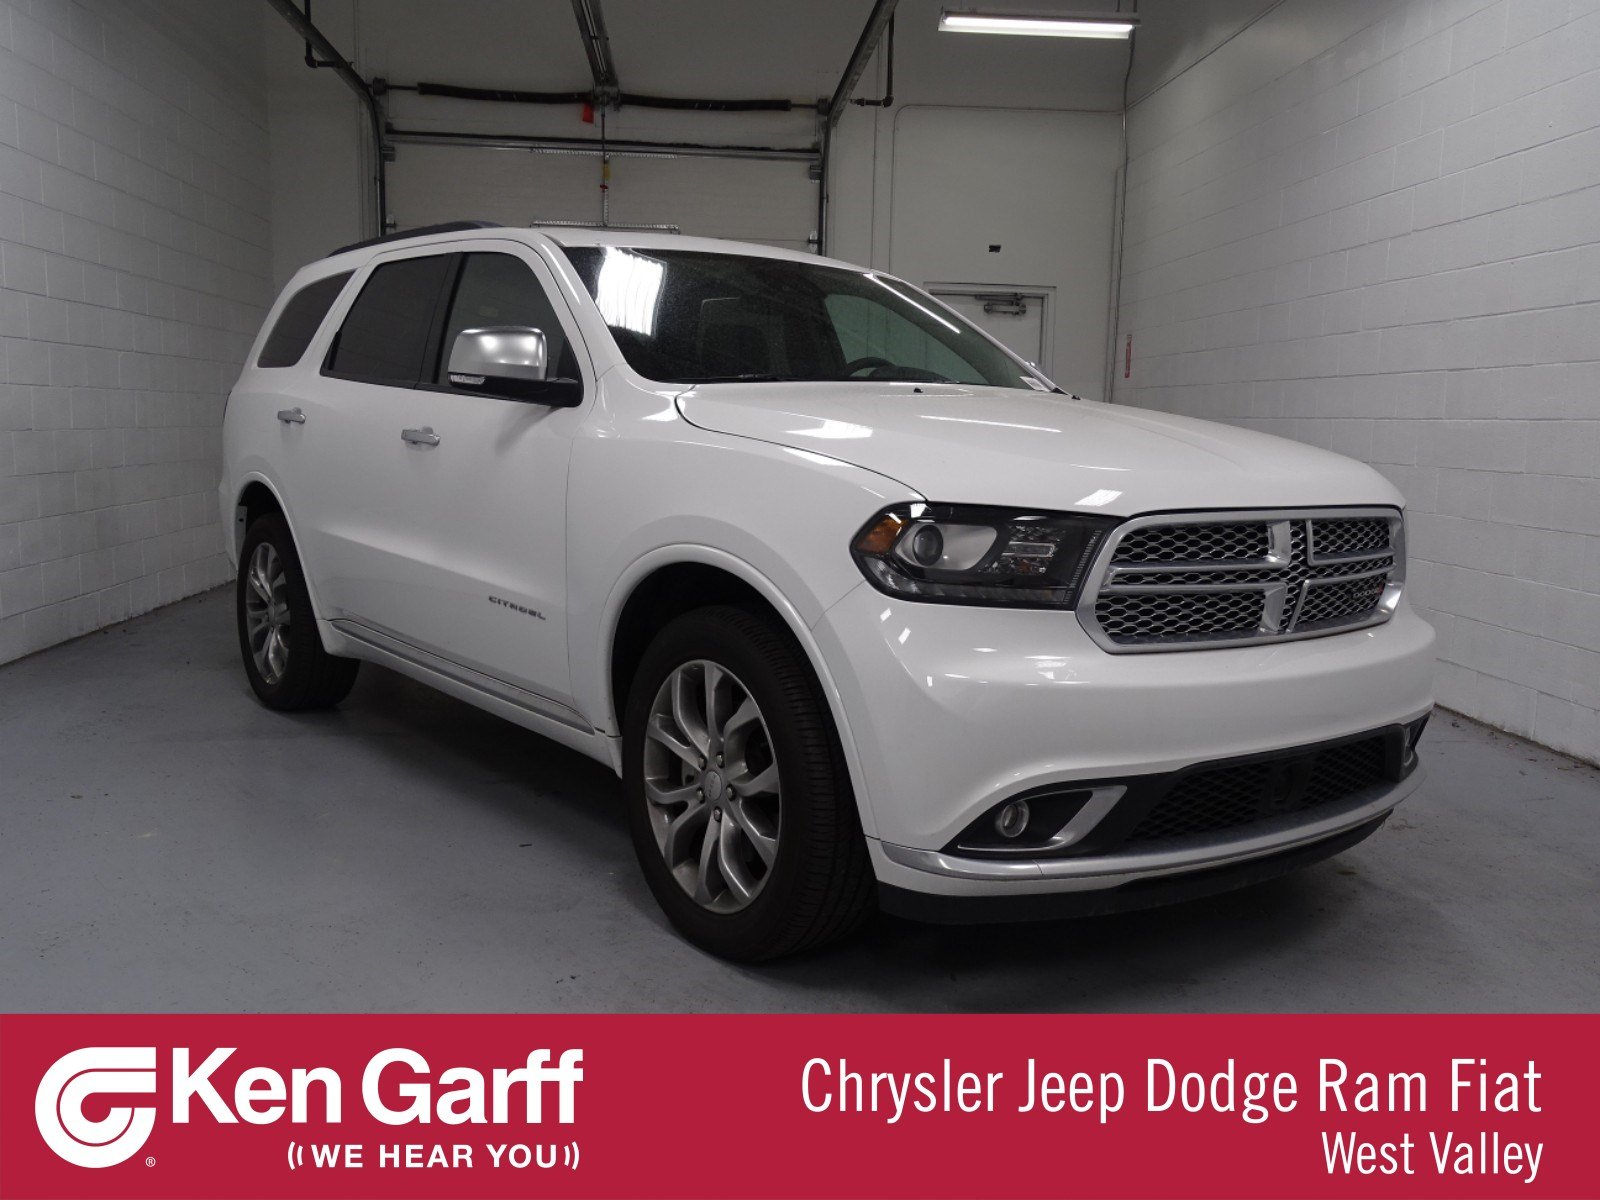 2004 Dodge Durango Limited Owner Manual